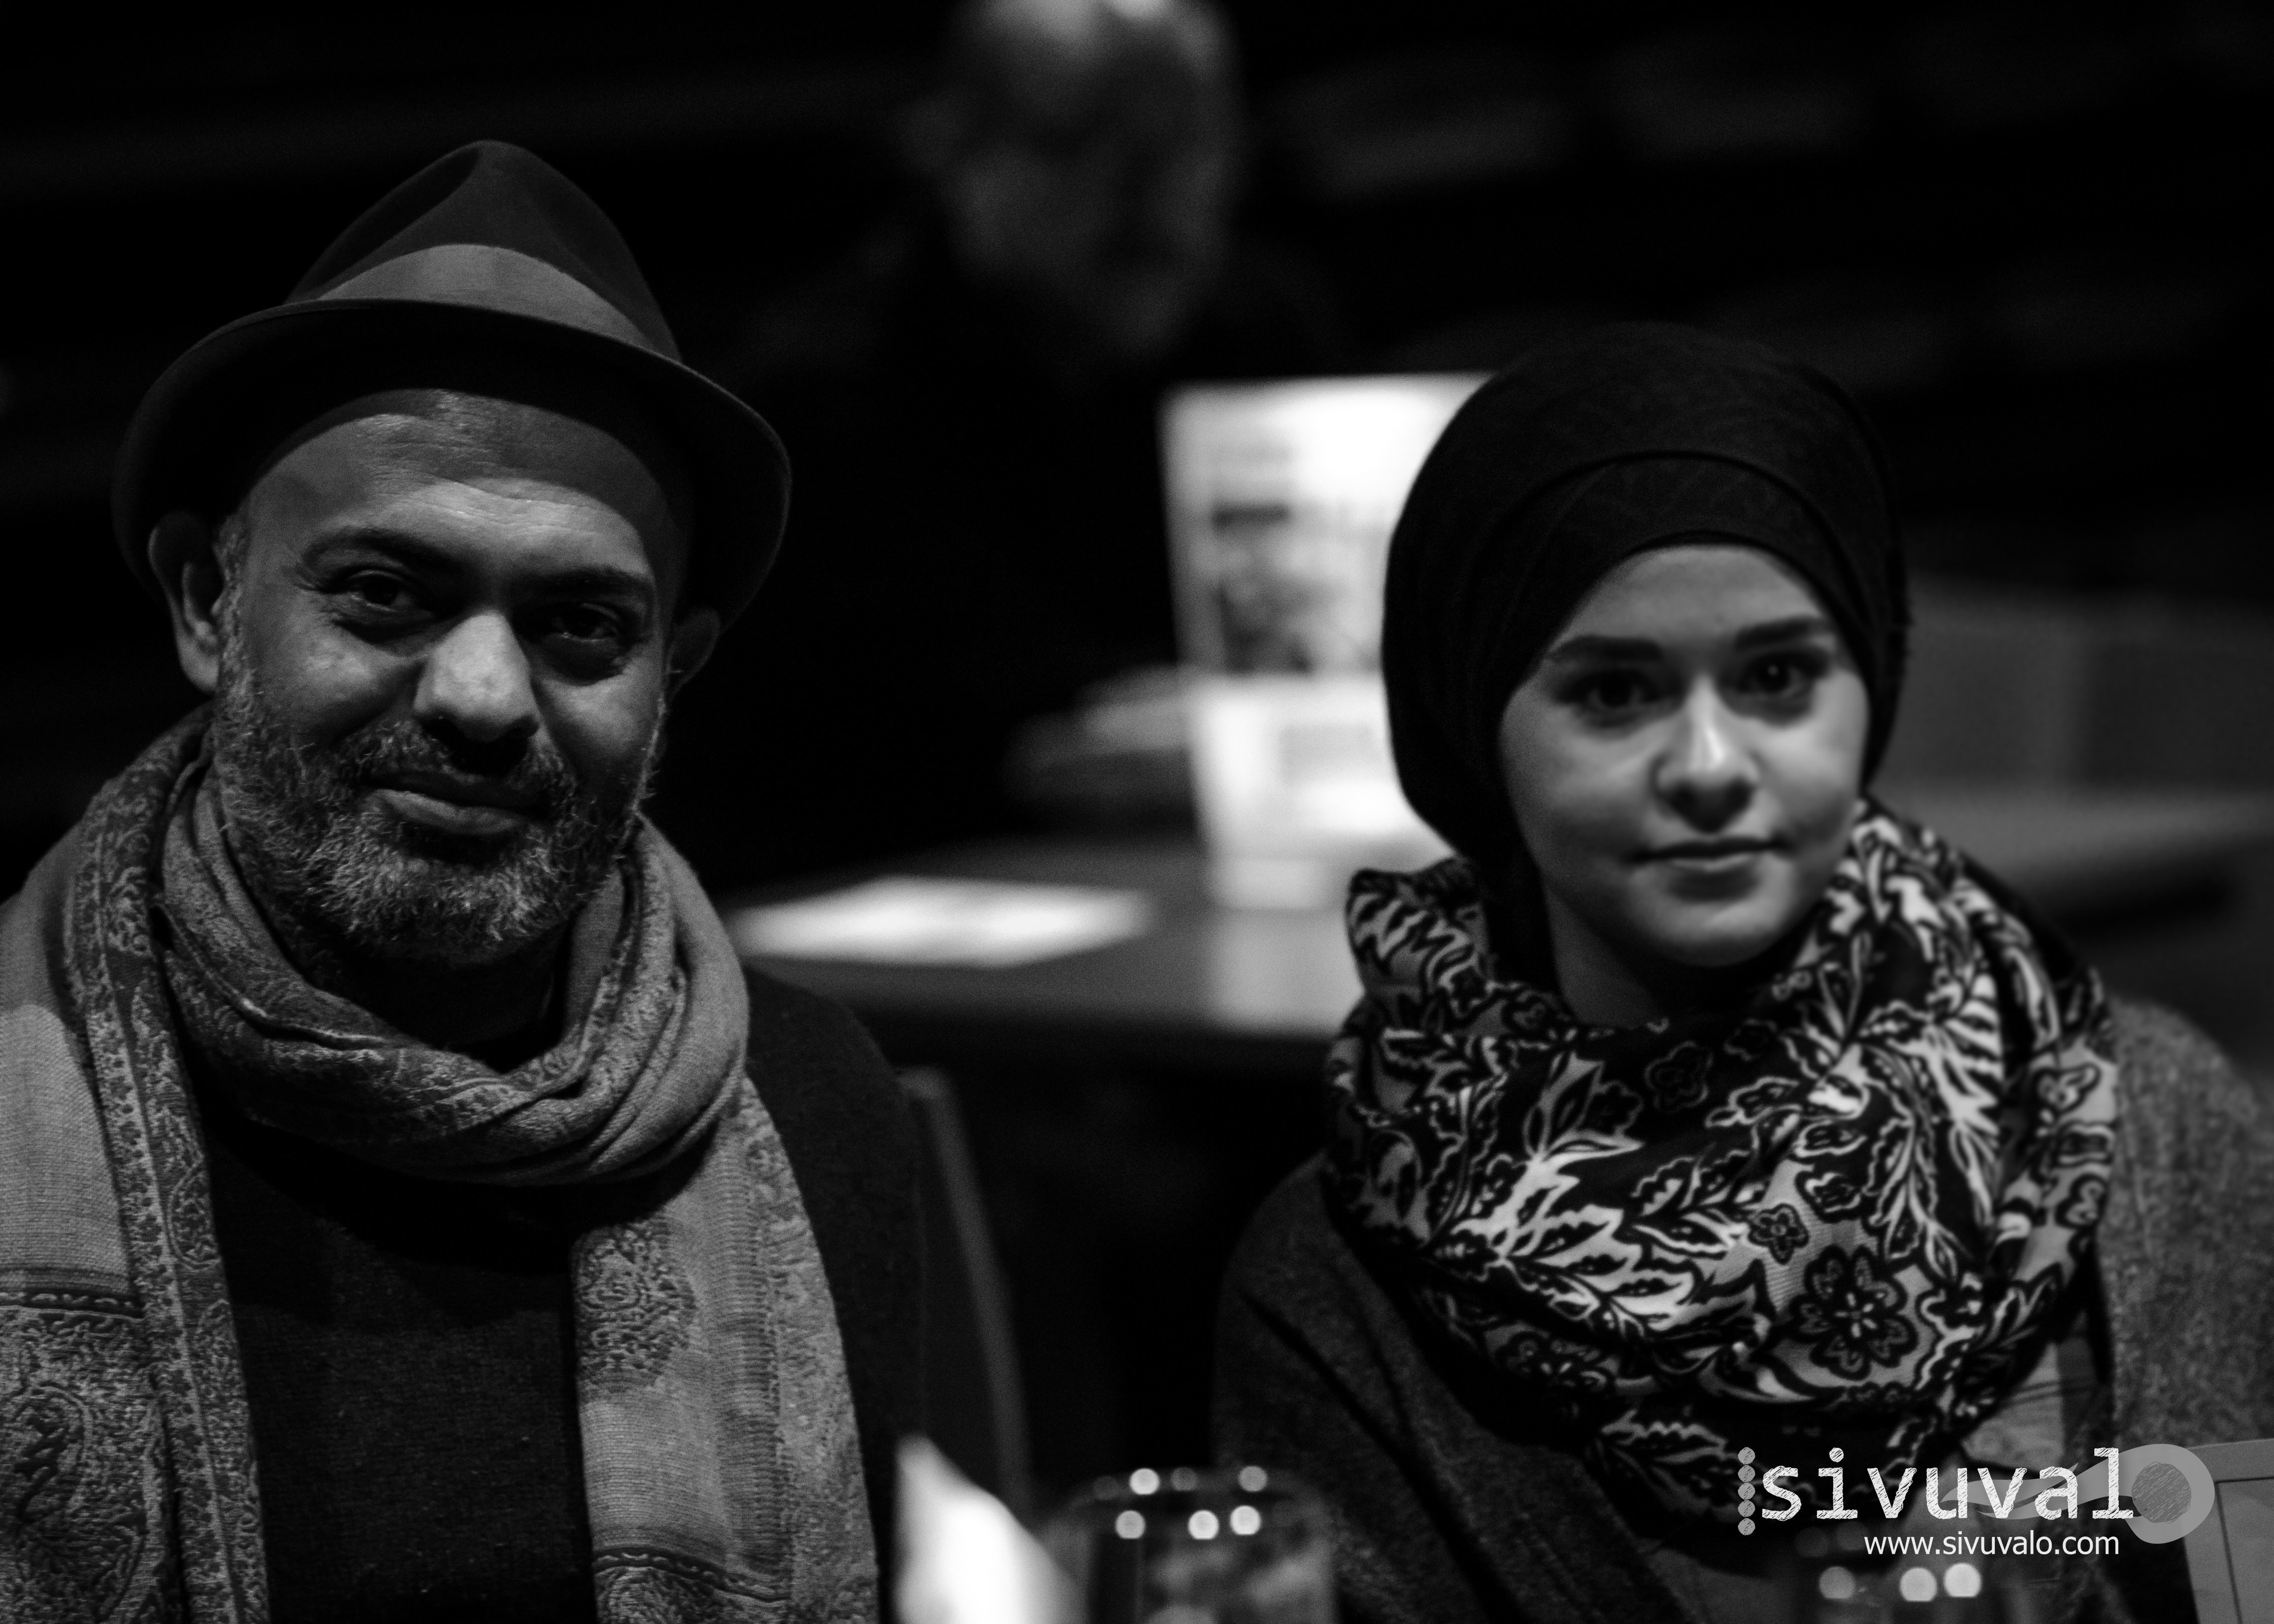 Iraqi writers Hassan Blassim and Aya Chalabee [Photo by: Jaime Culebro]